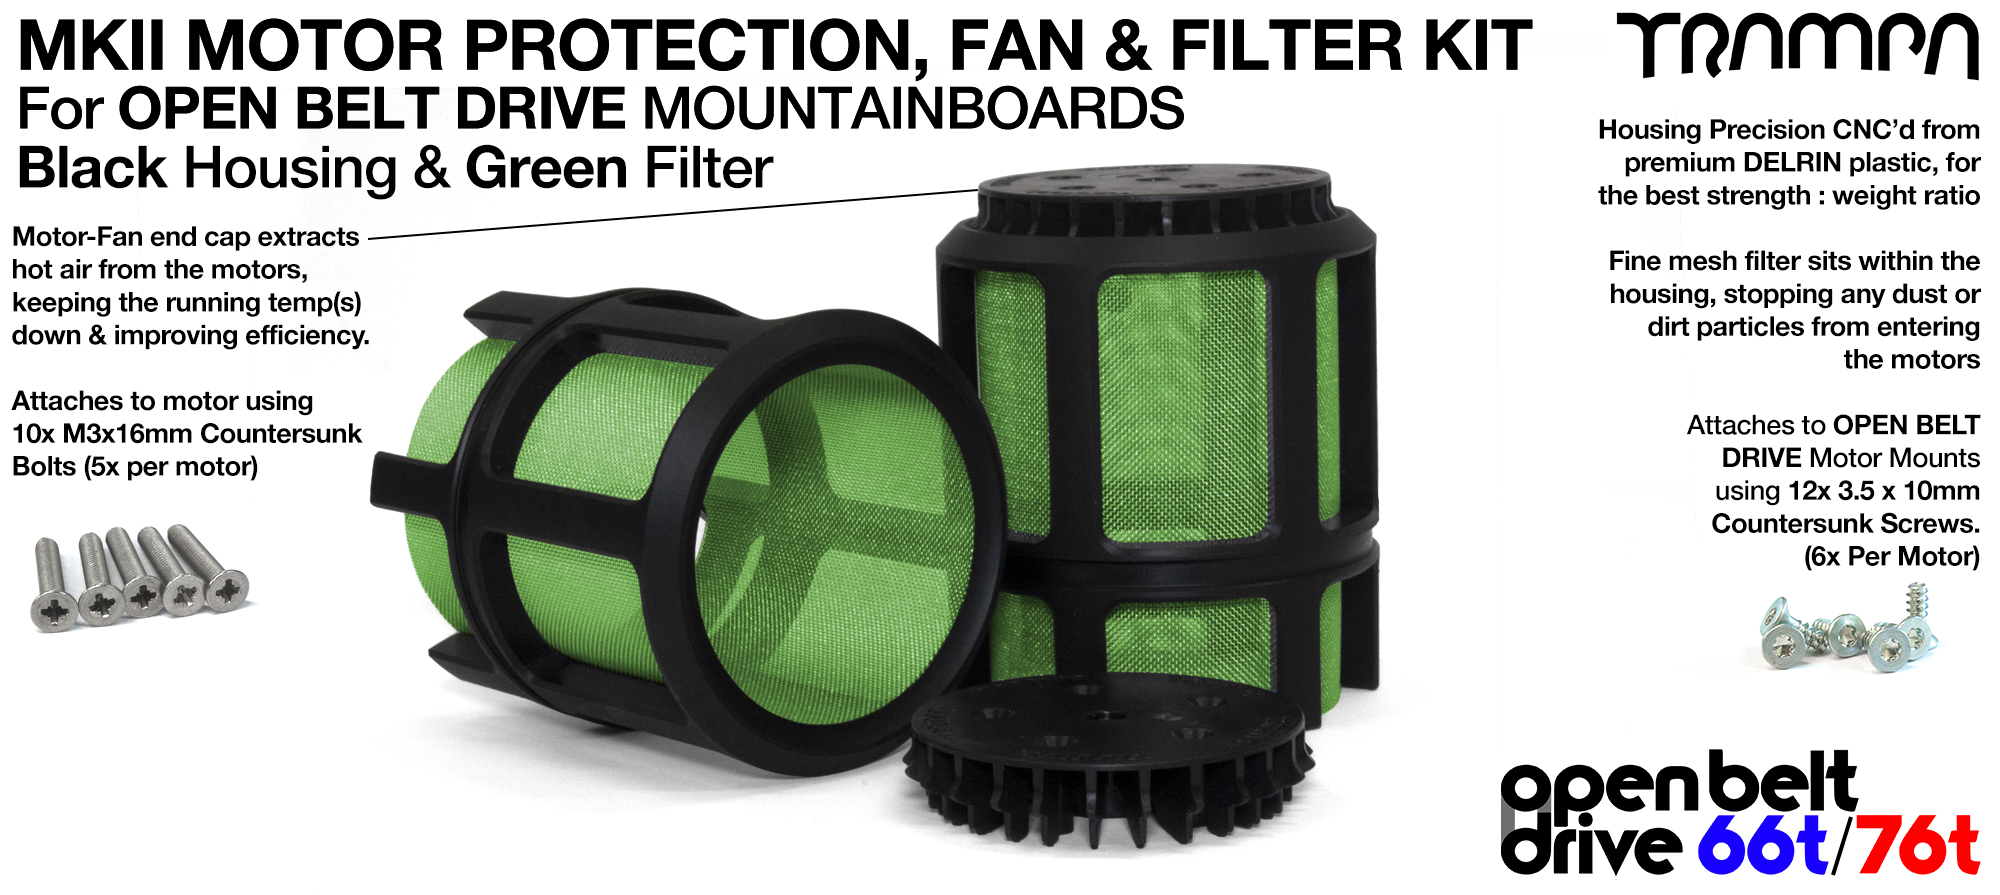 GREEN Mesh Filter in Motor Protection Cage with Fan (+£60)